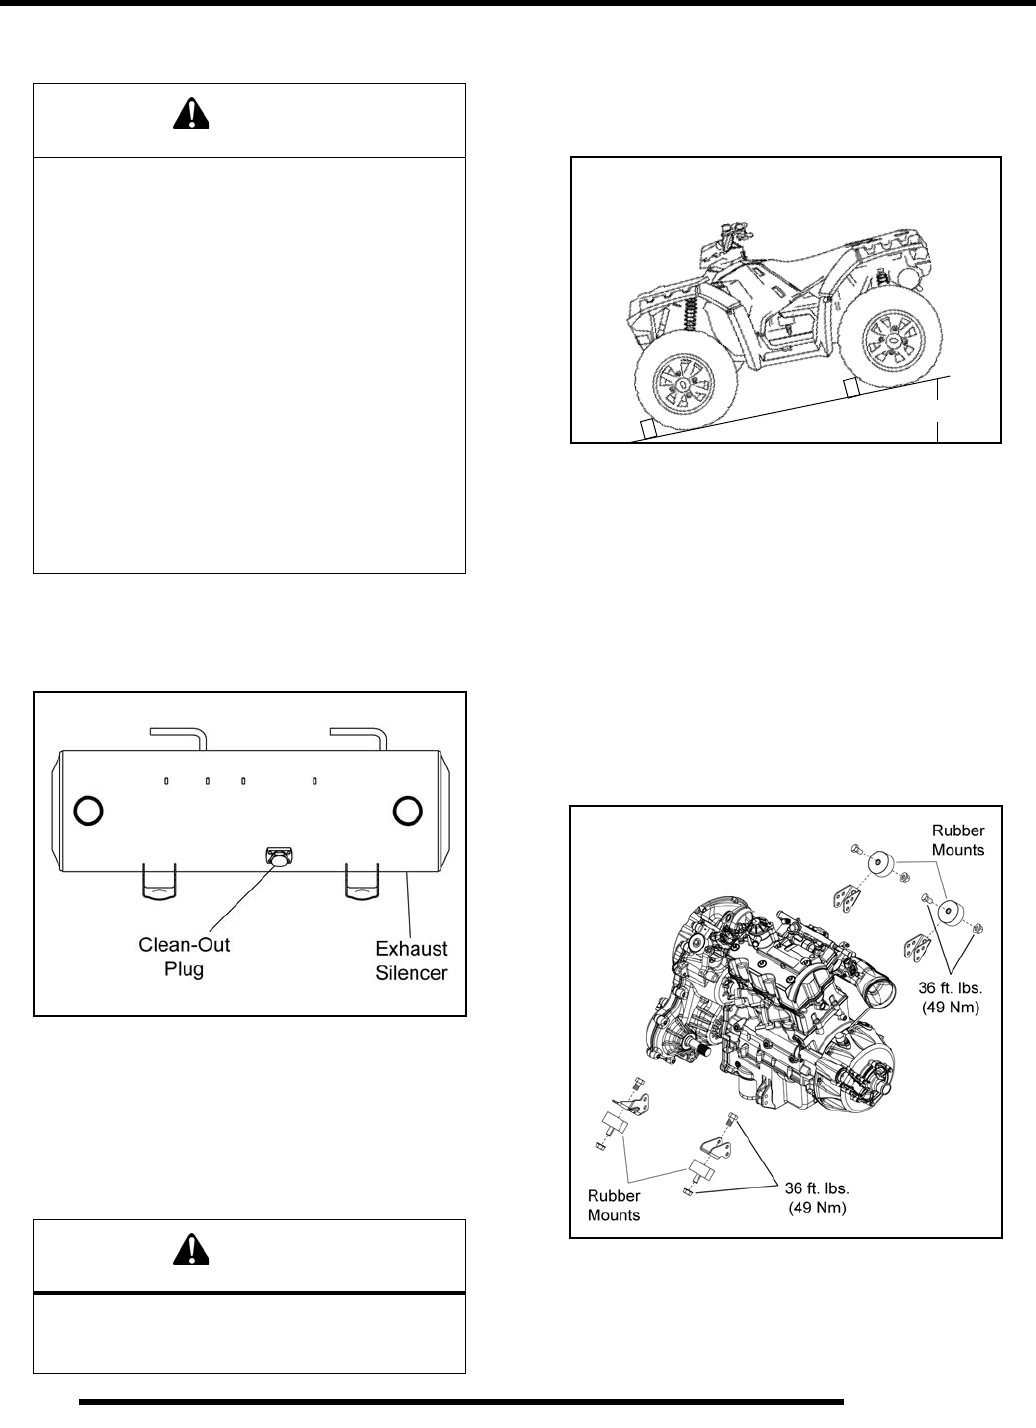 2009 Polaris Sportsman XP 850 Service Manual